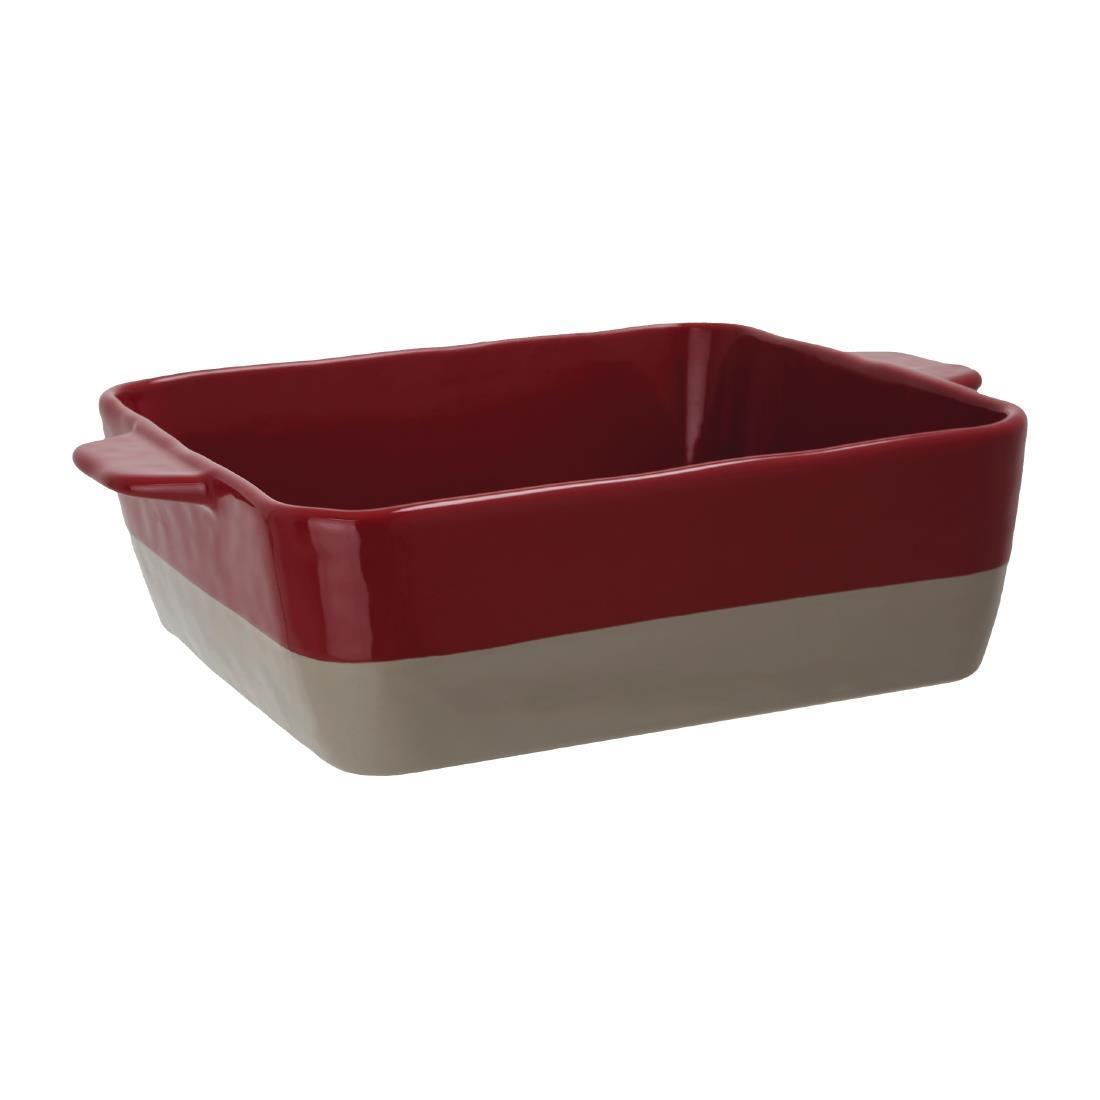 Olympia Red And Taupe Ceramic Roasting Dish